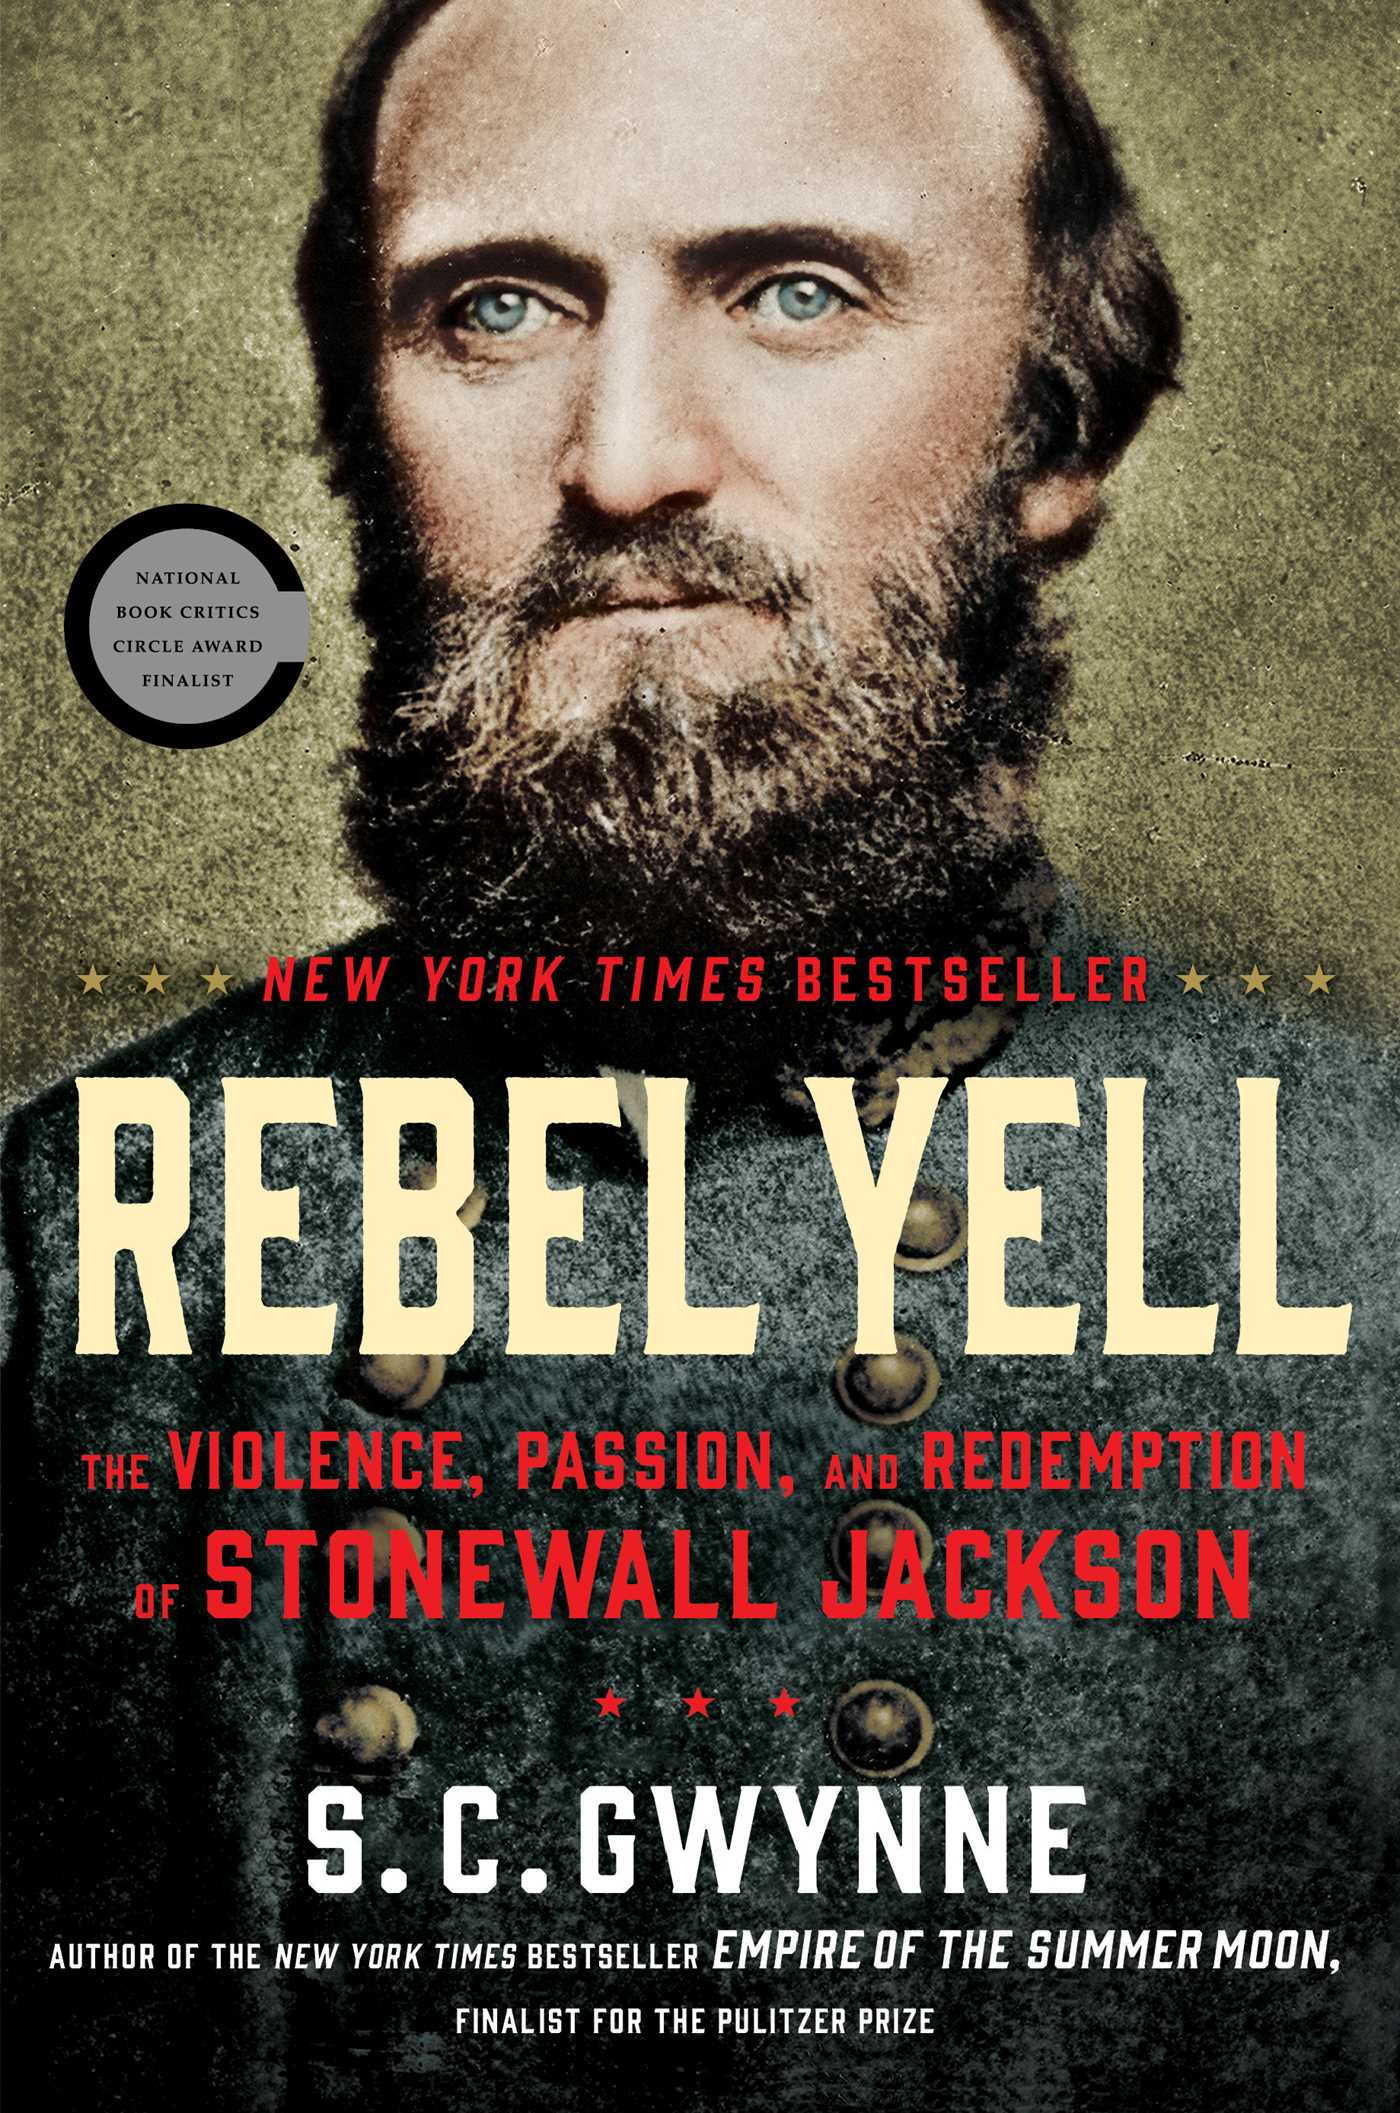 Rebel yell 9781451673289 hr